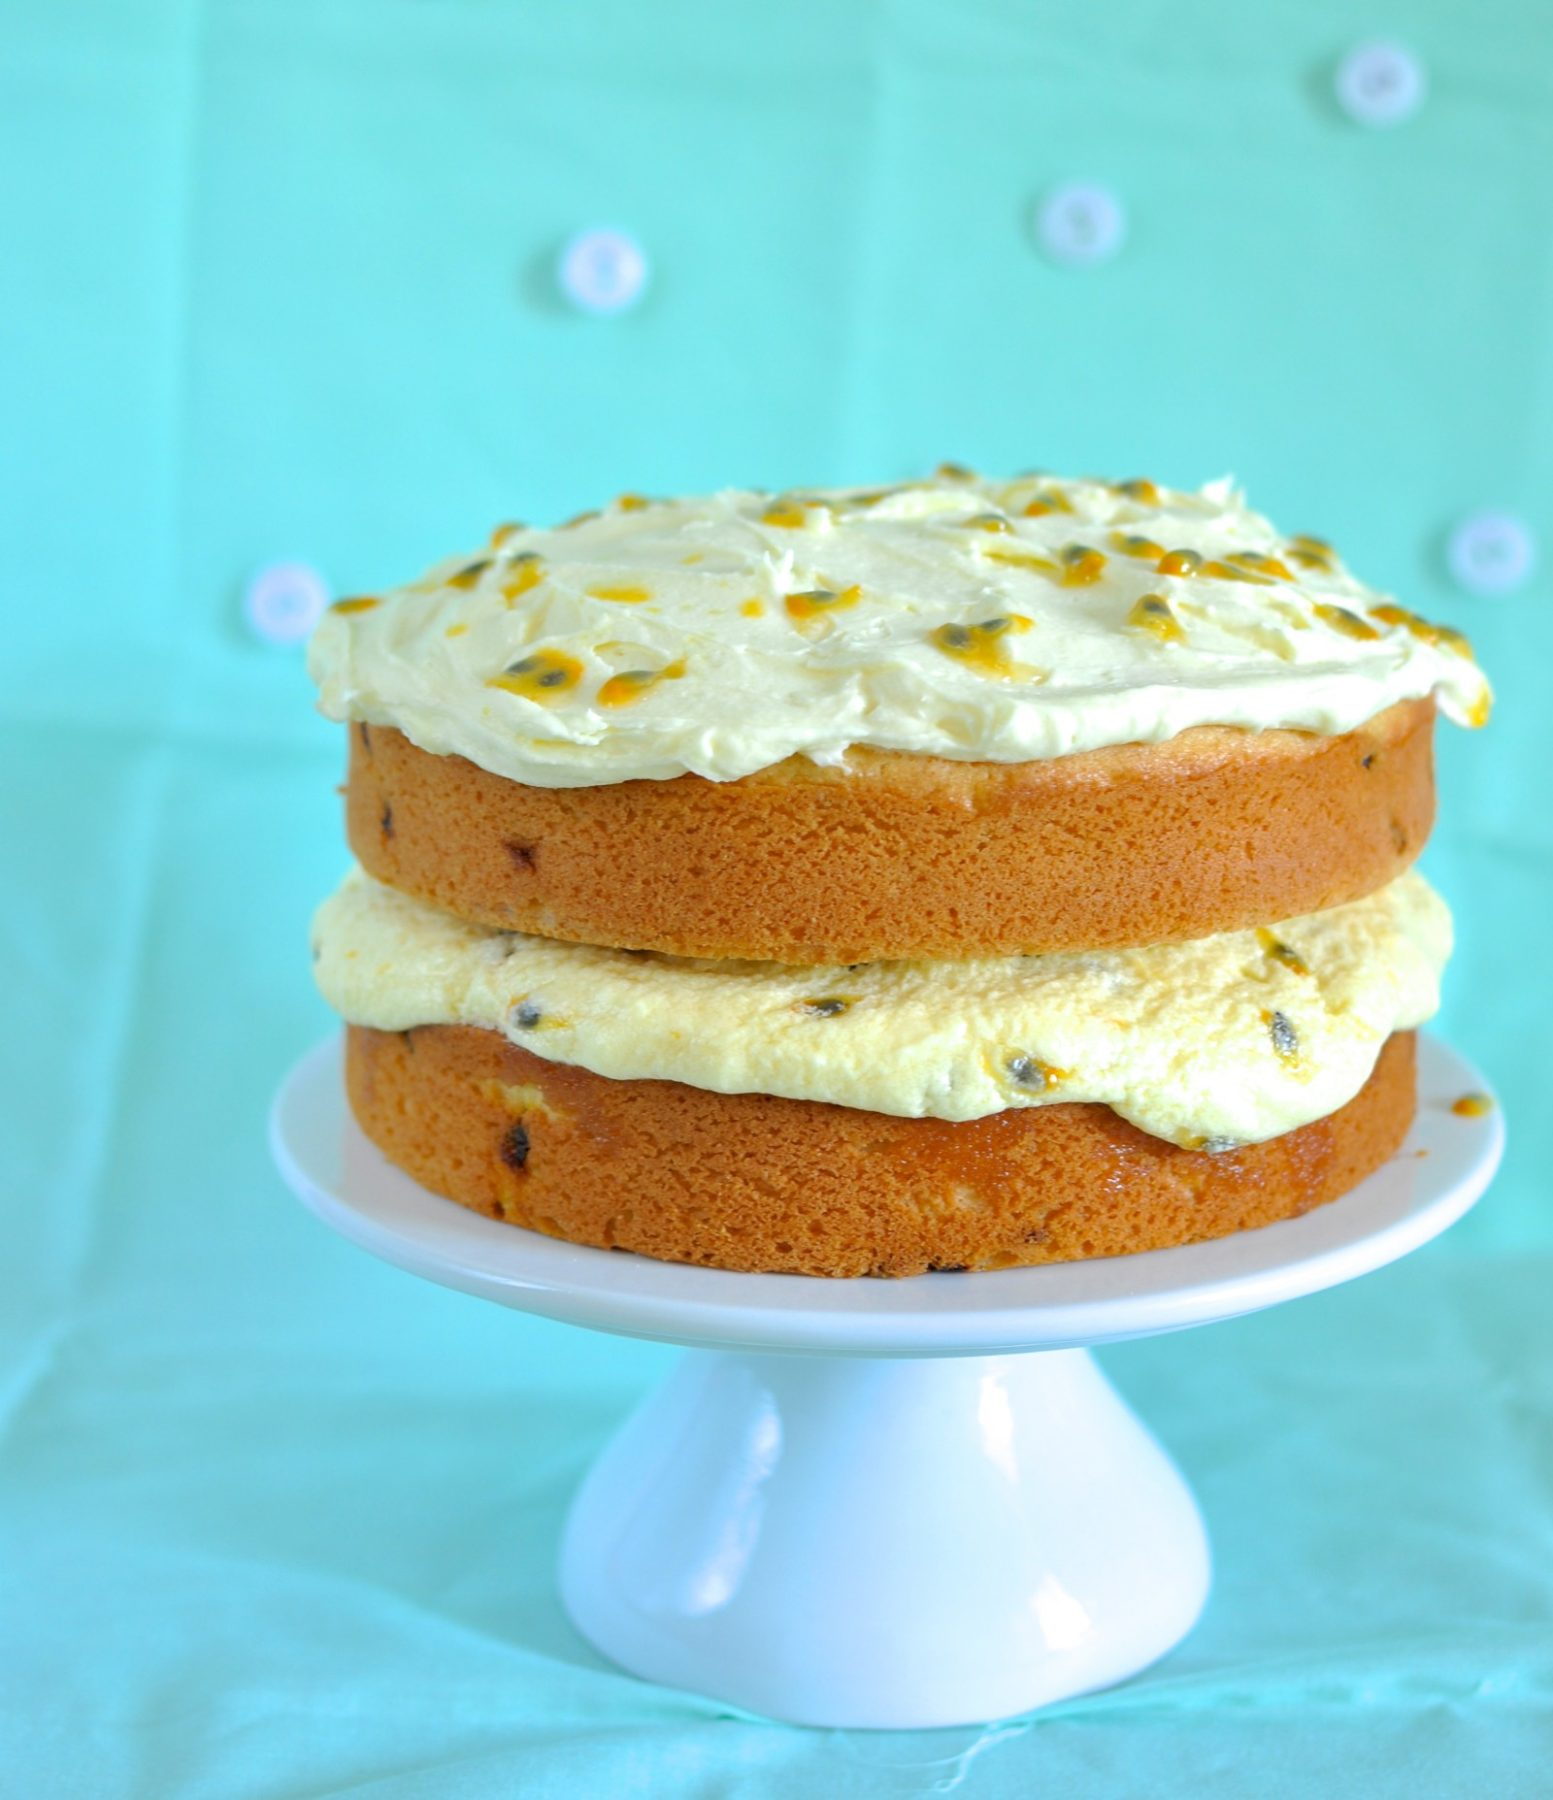 Coconut passionfruit cake